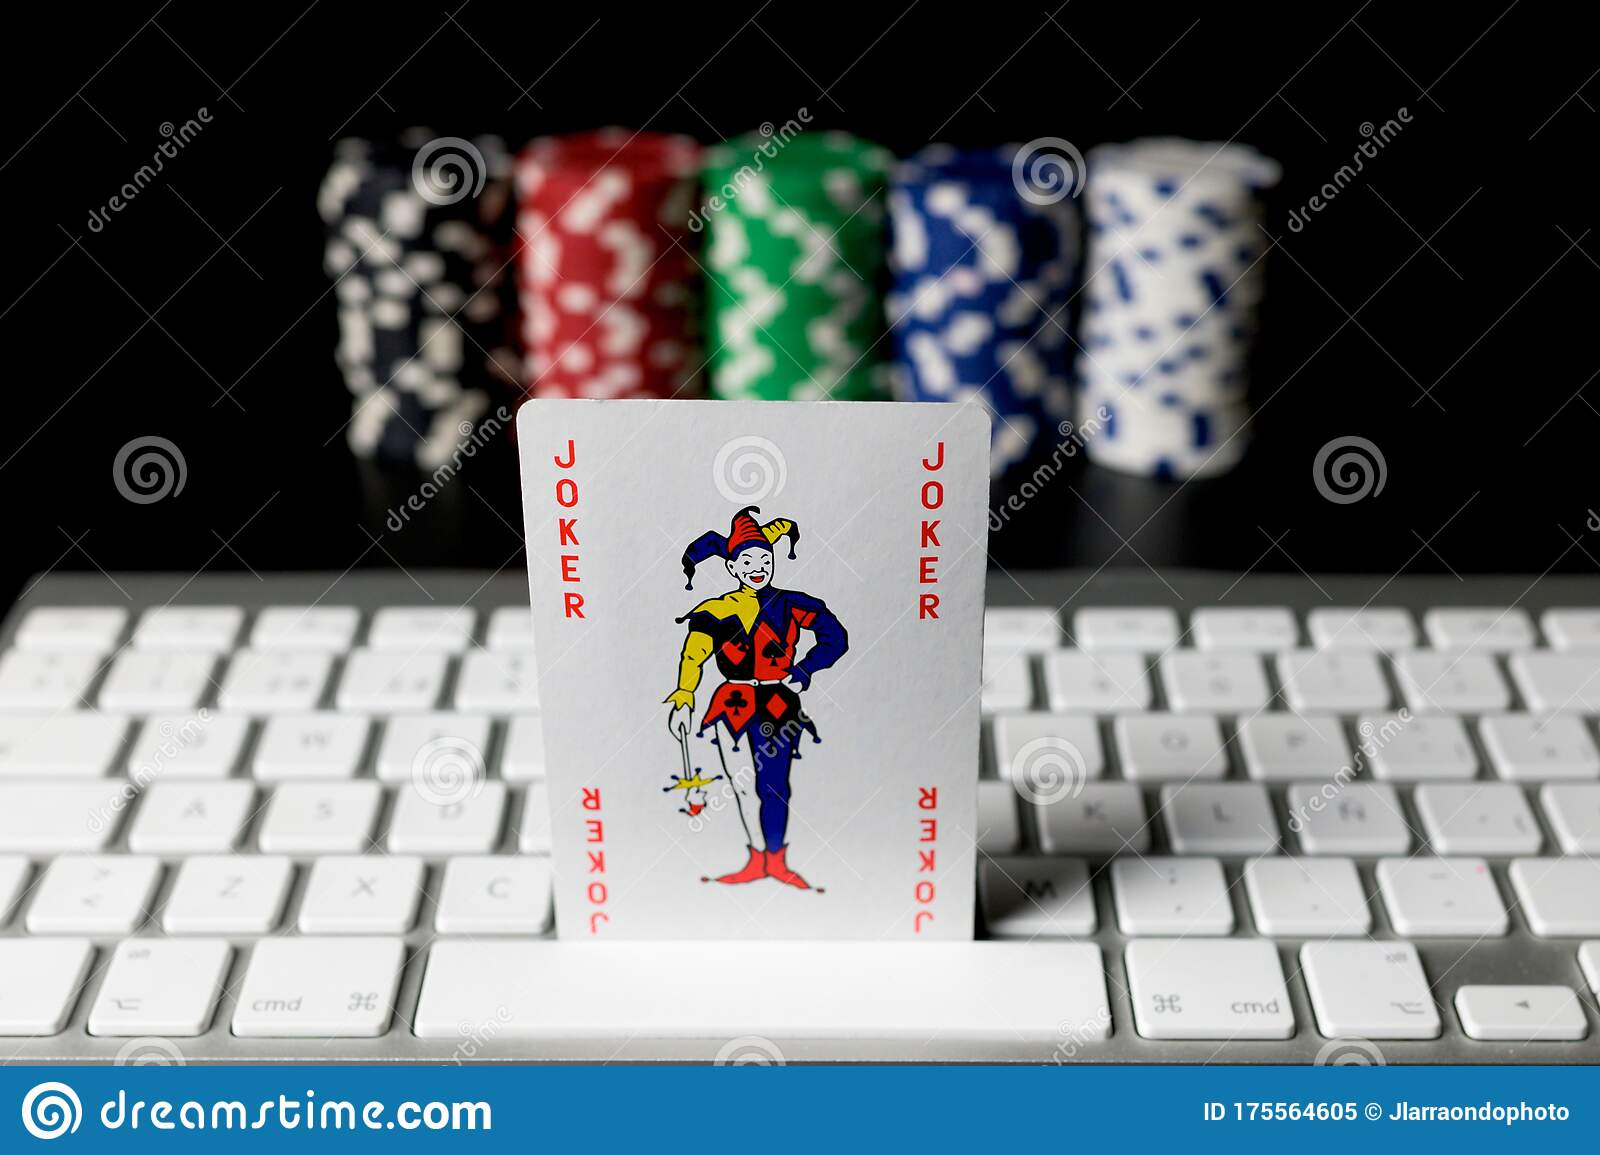 Joker Poker Card On A Computer Keyboard With Poker Chips Placed In Columns Unfocused On The Background Isolated On Black Editorial Image Image Of Computer Luck 175564605